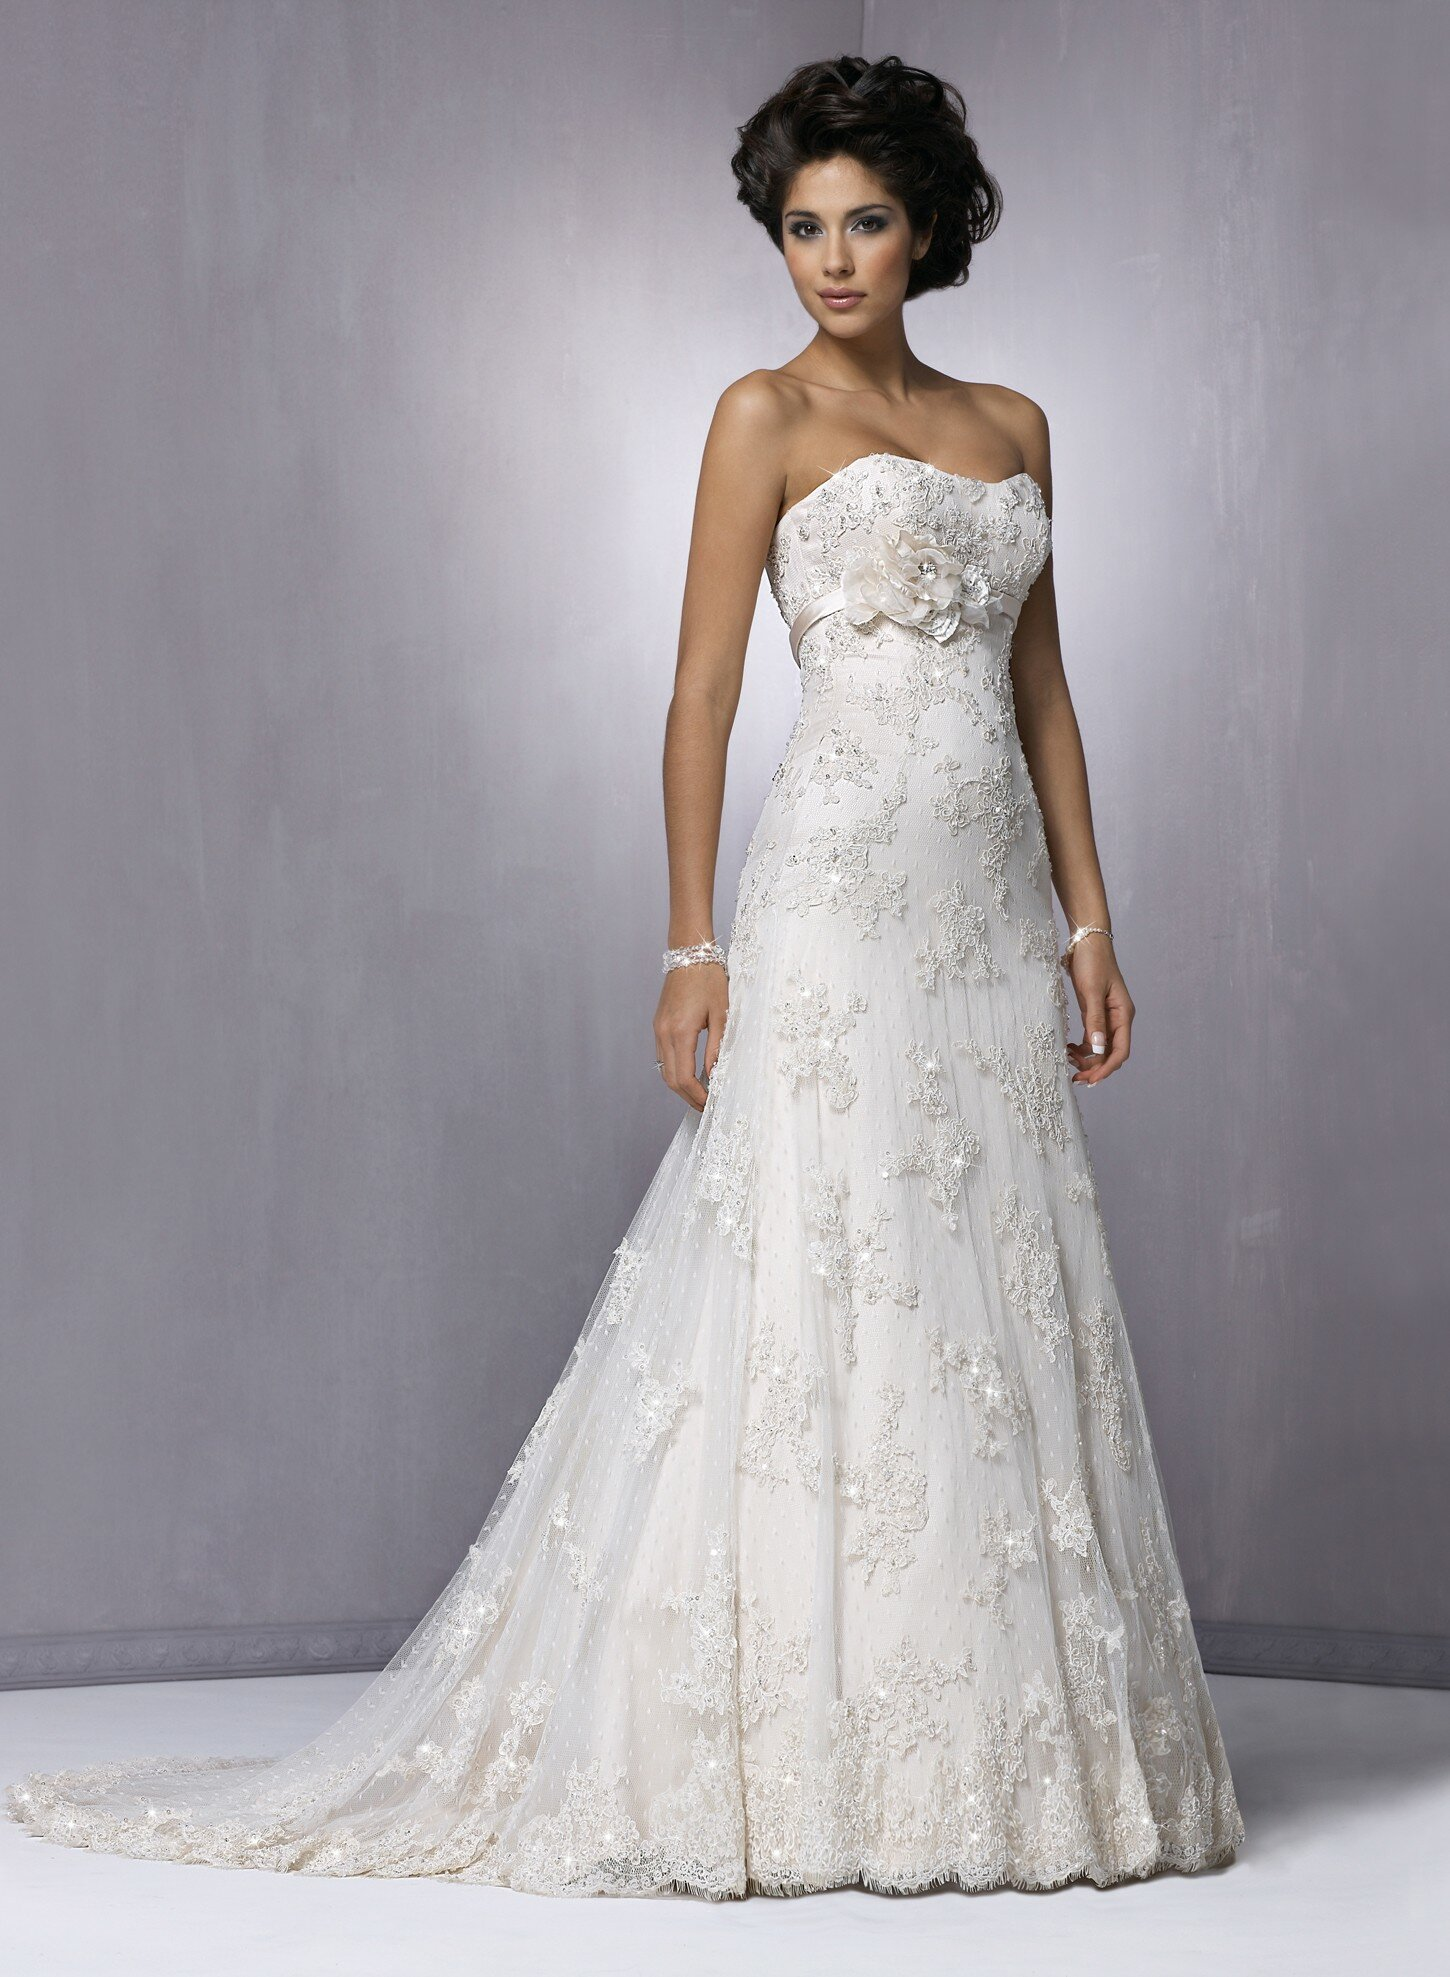 Lace top to wear under strapless dress